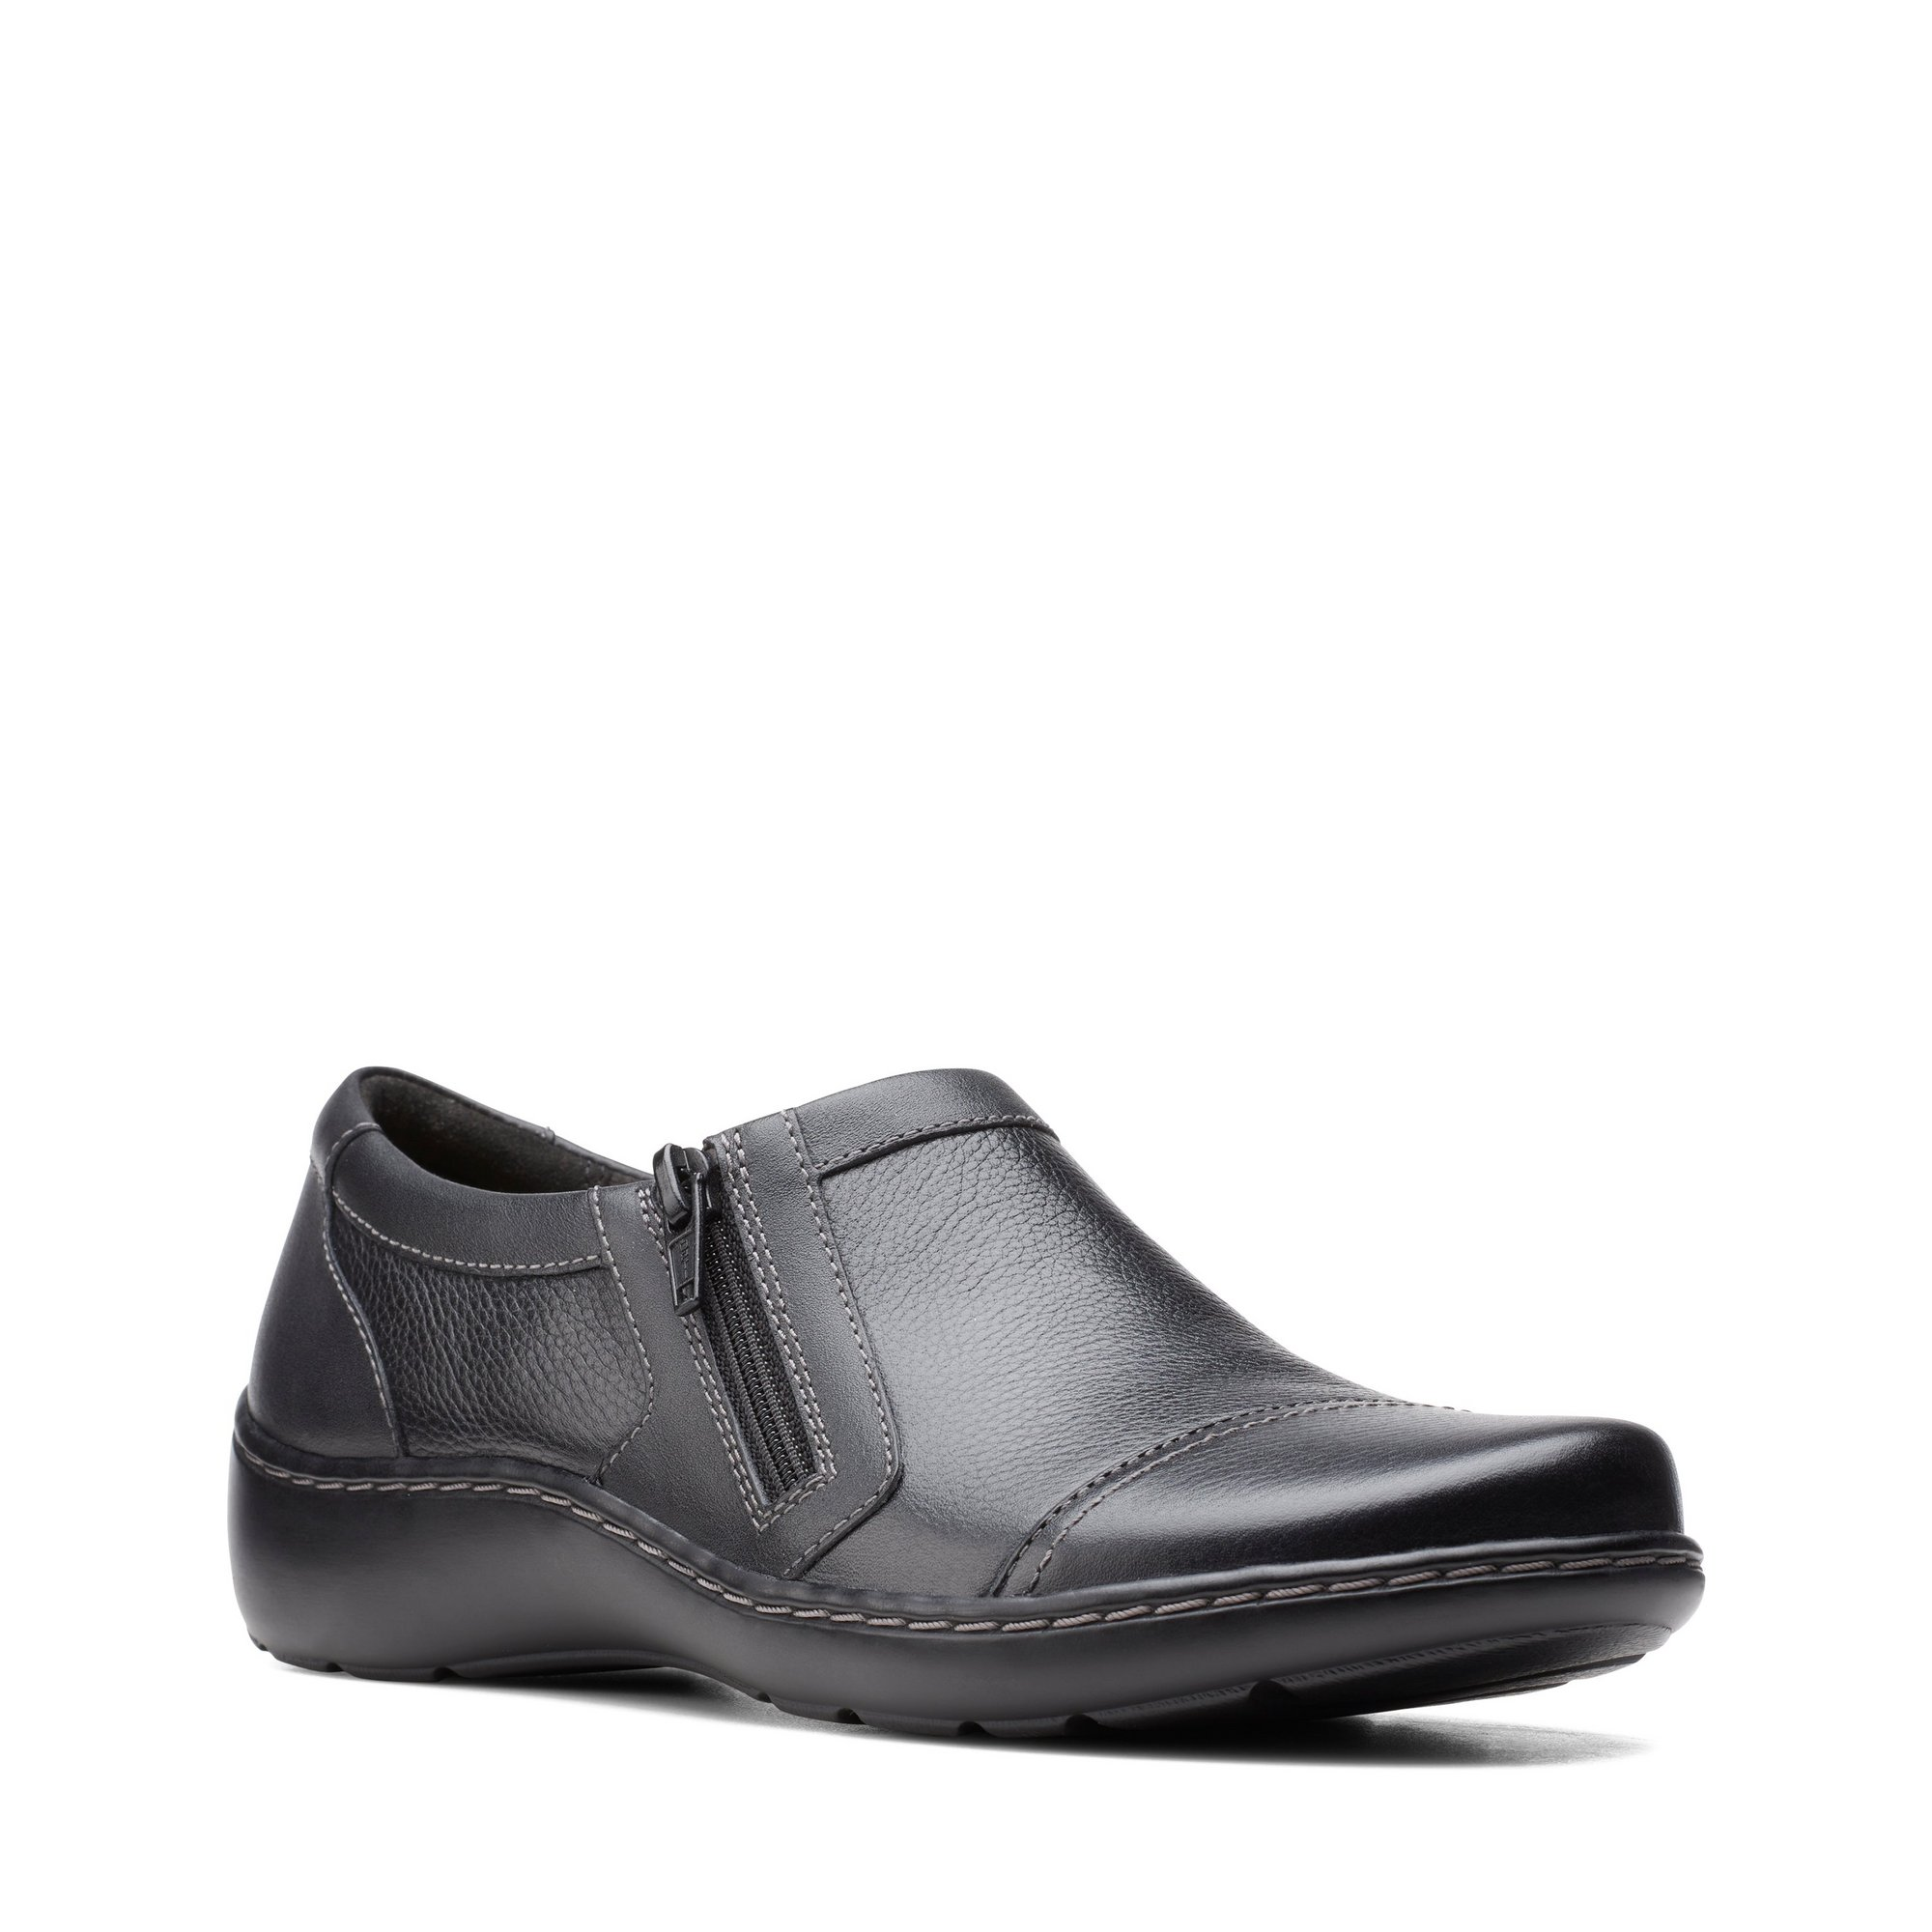 Image of Clarks Cora Giny Black Shoes